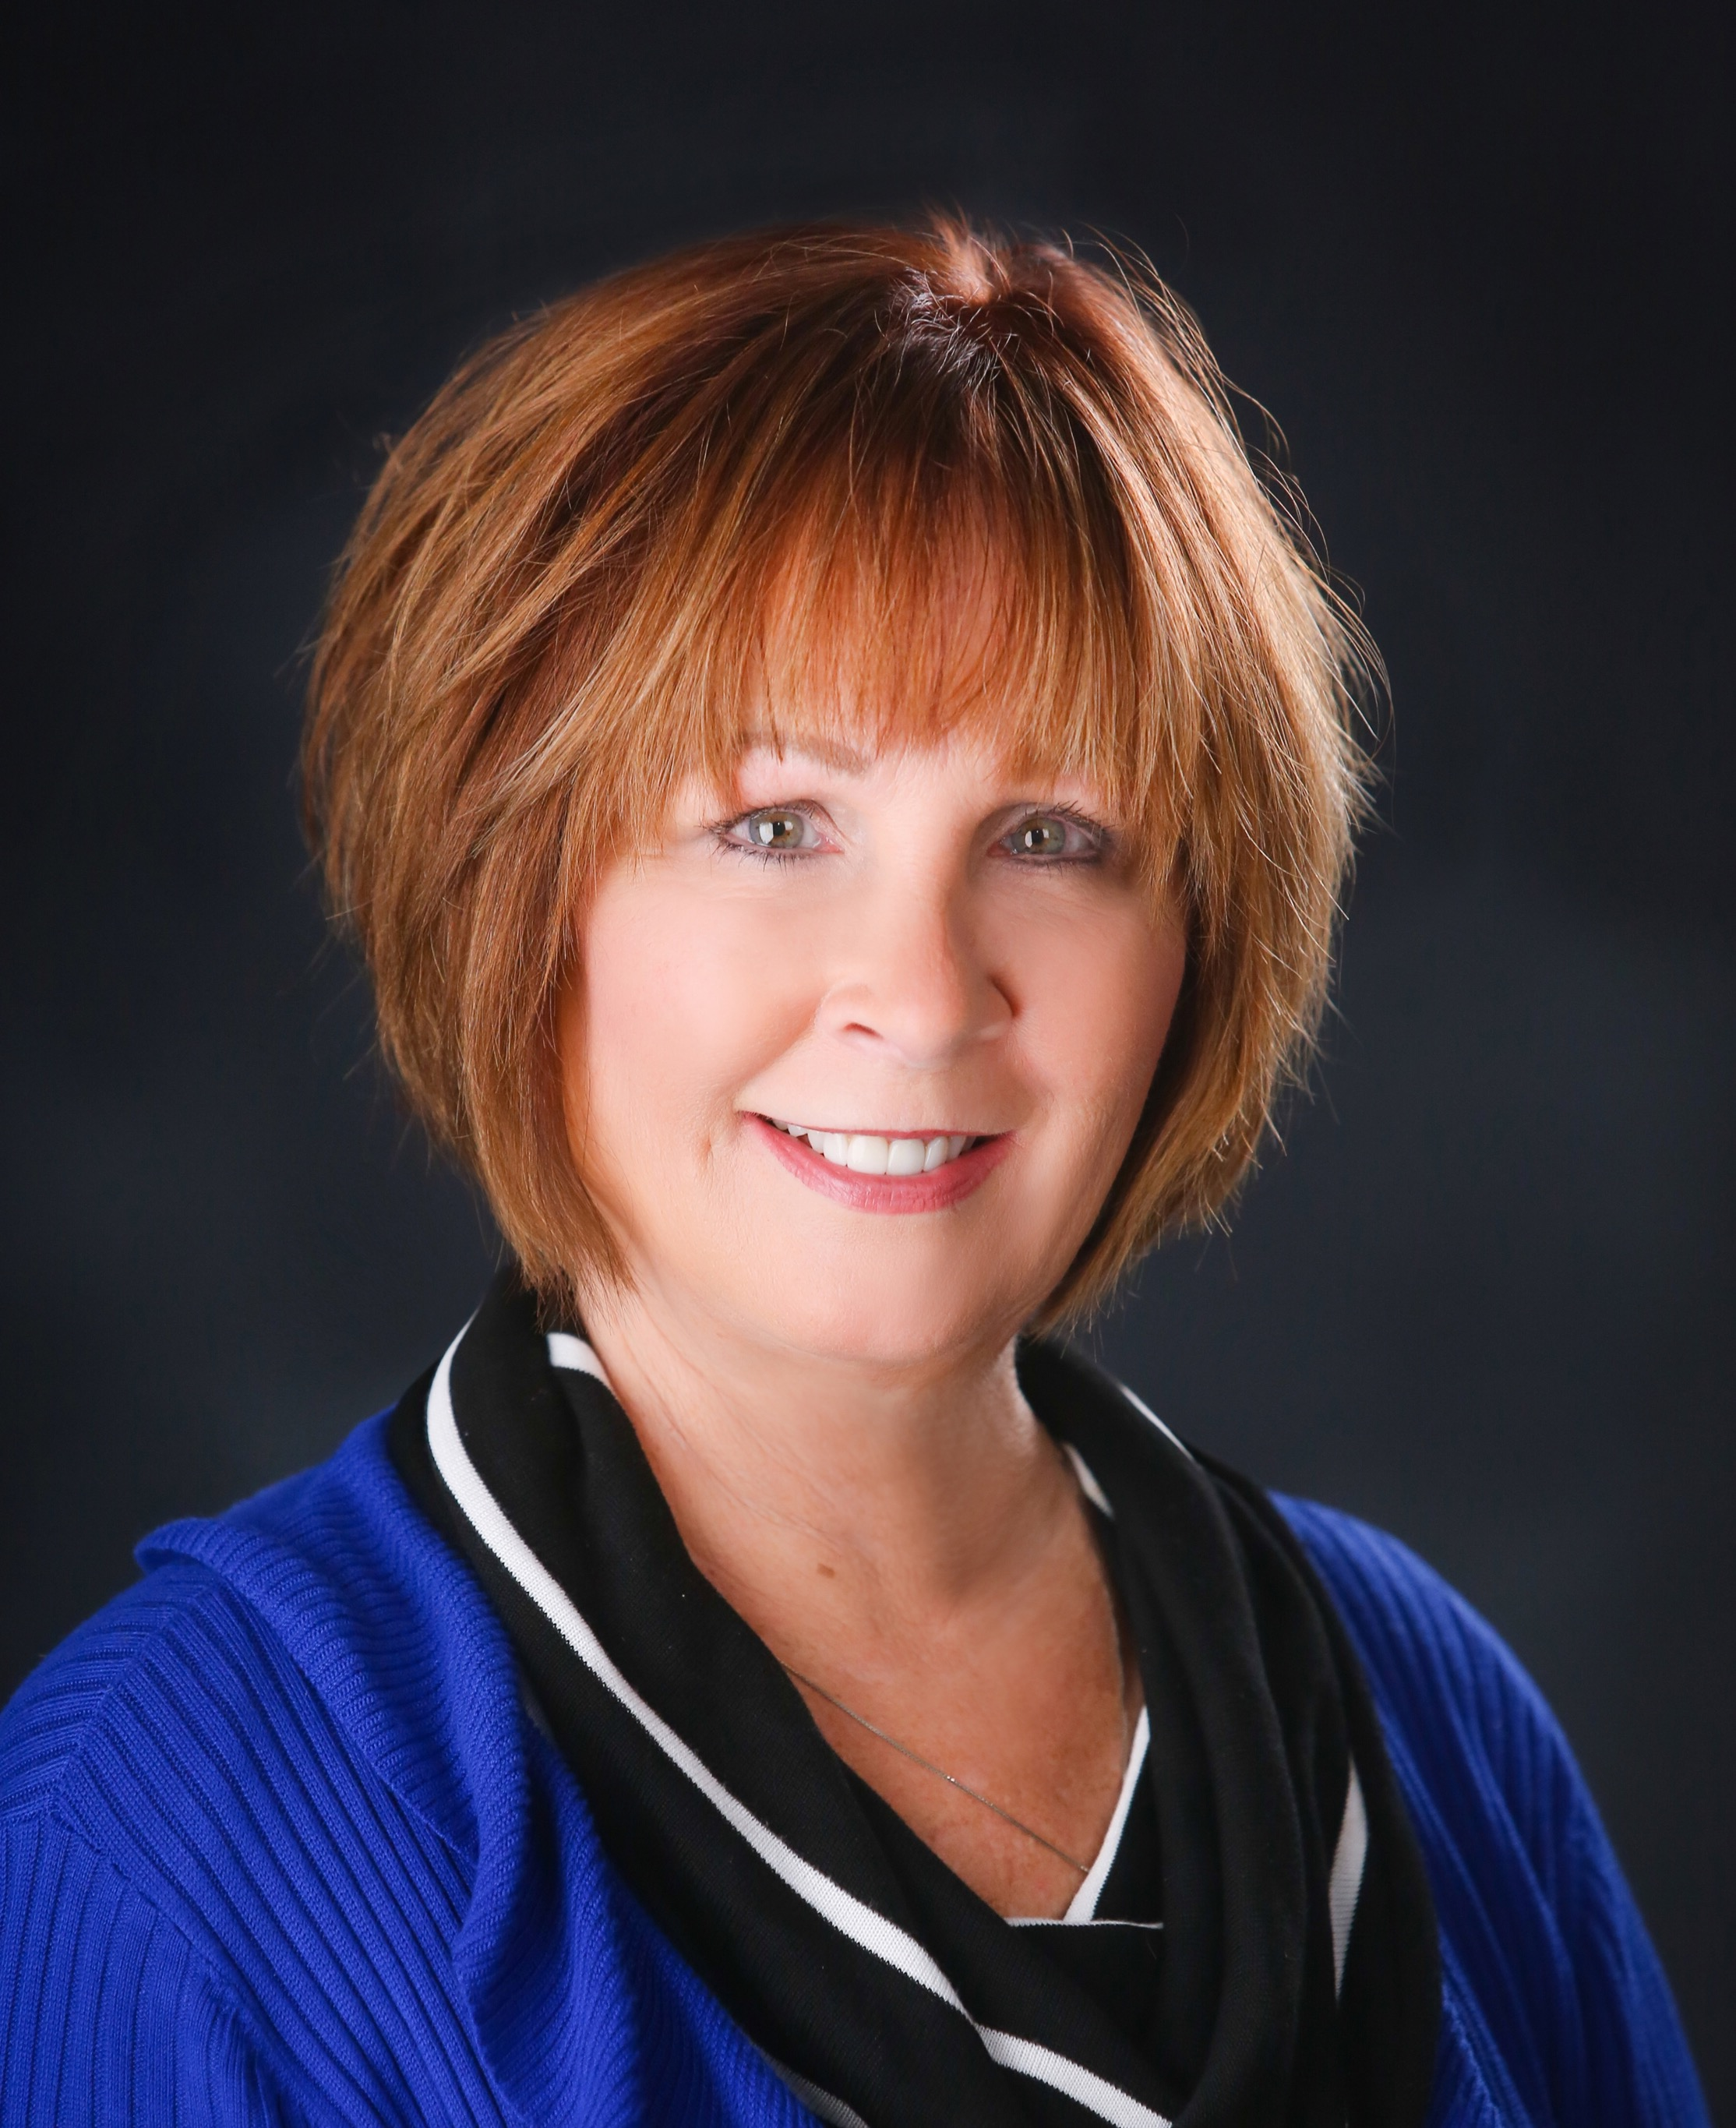 Search Homes For Rent By School District: Judy Brown, Real Estate Agent